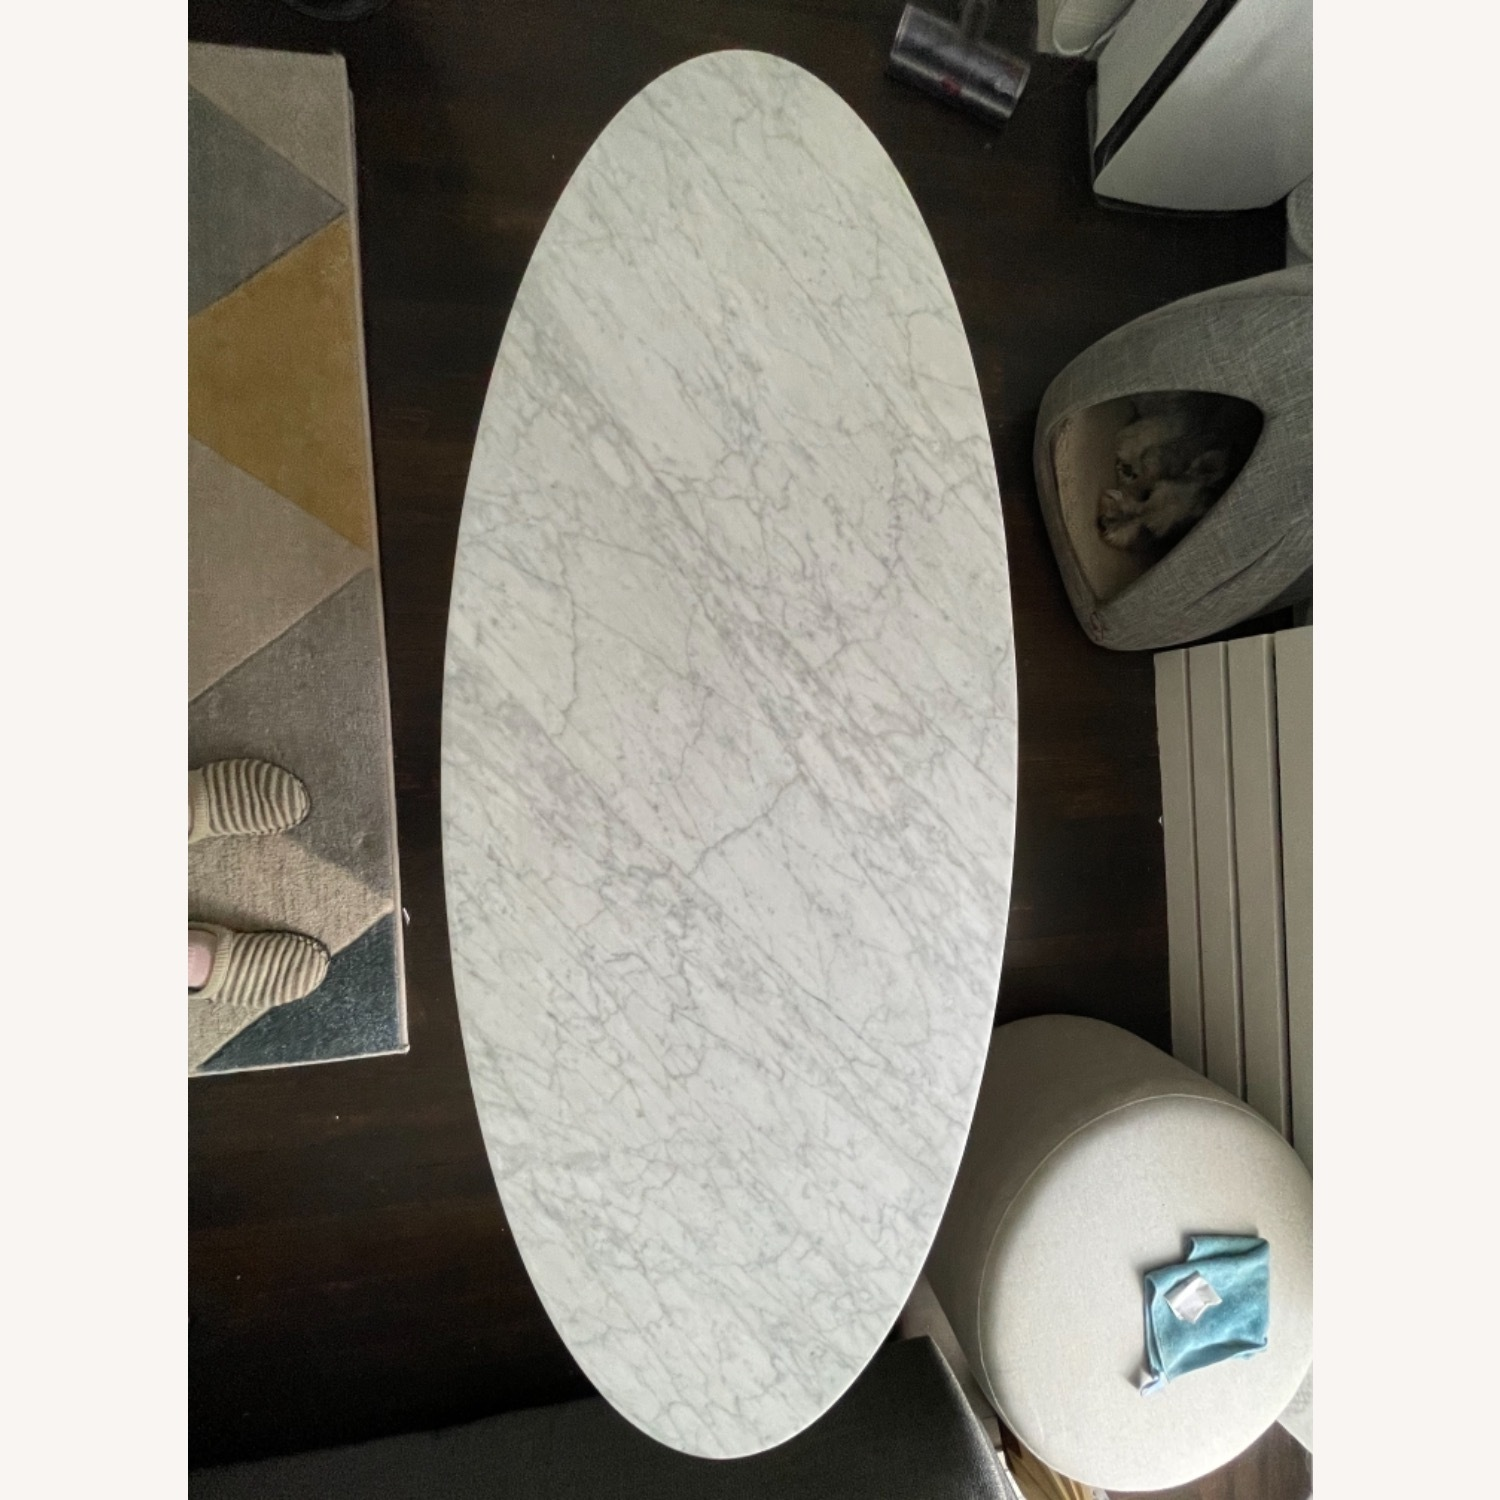 West Elm Reeve Mid-Century Oval Coffee Table - Marble Top - image-8